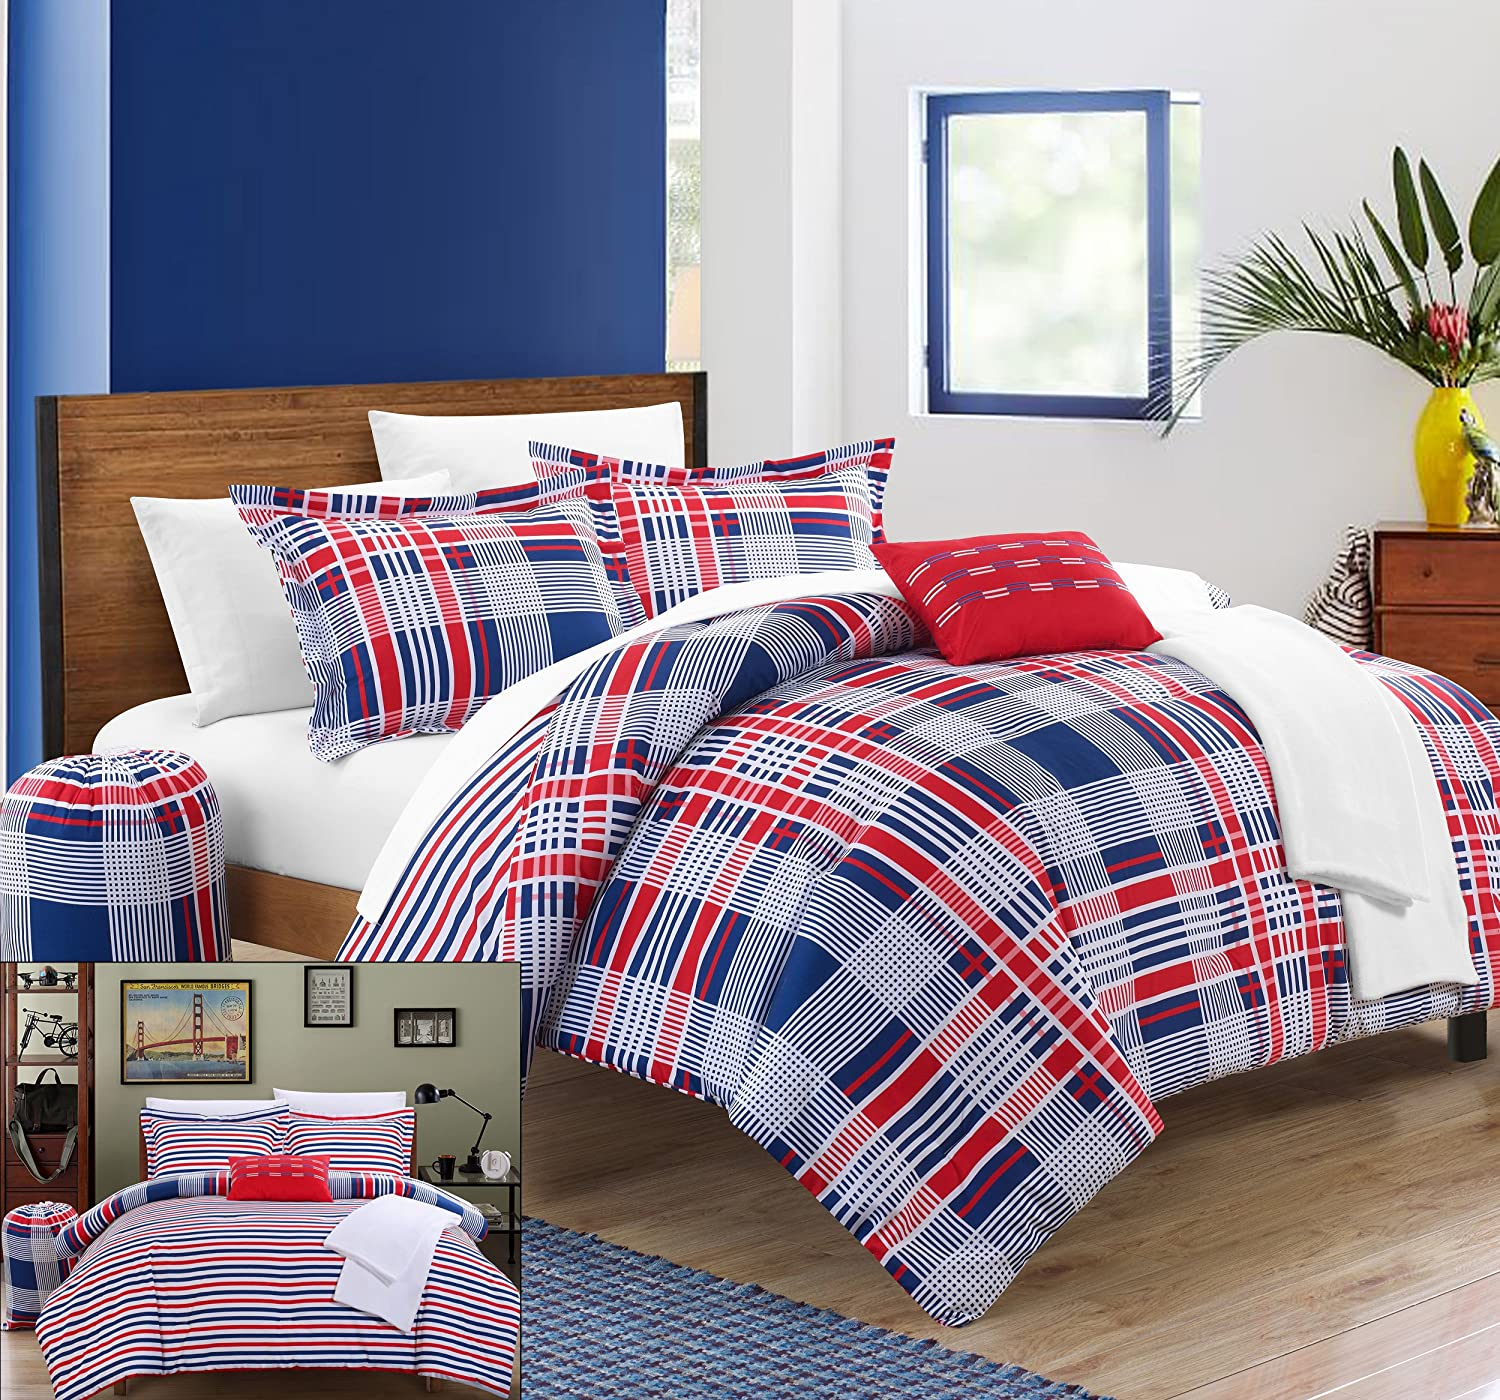 Chic Home 8 Piece Manchester Plaid Printed Reversible Backing Bed in a Bag Comforter Set with Sheet, Twin X-Long, Red